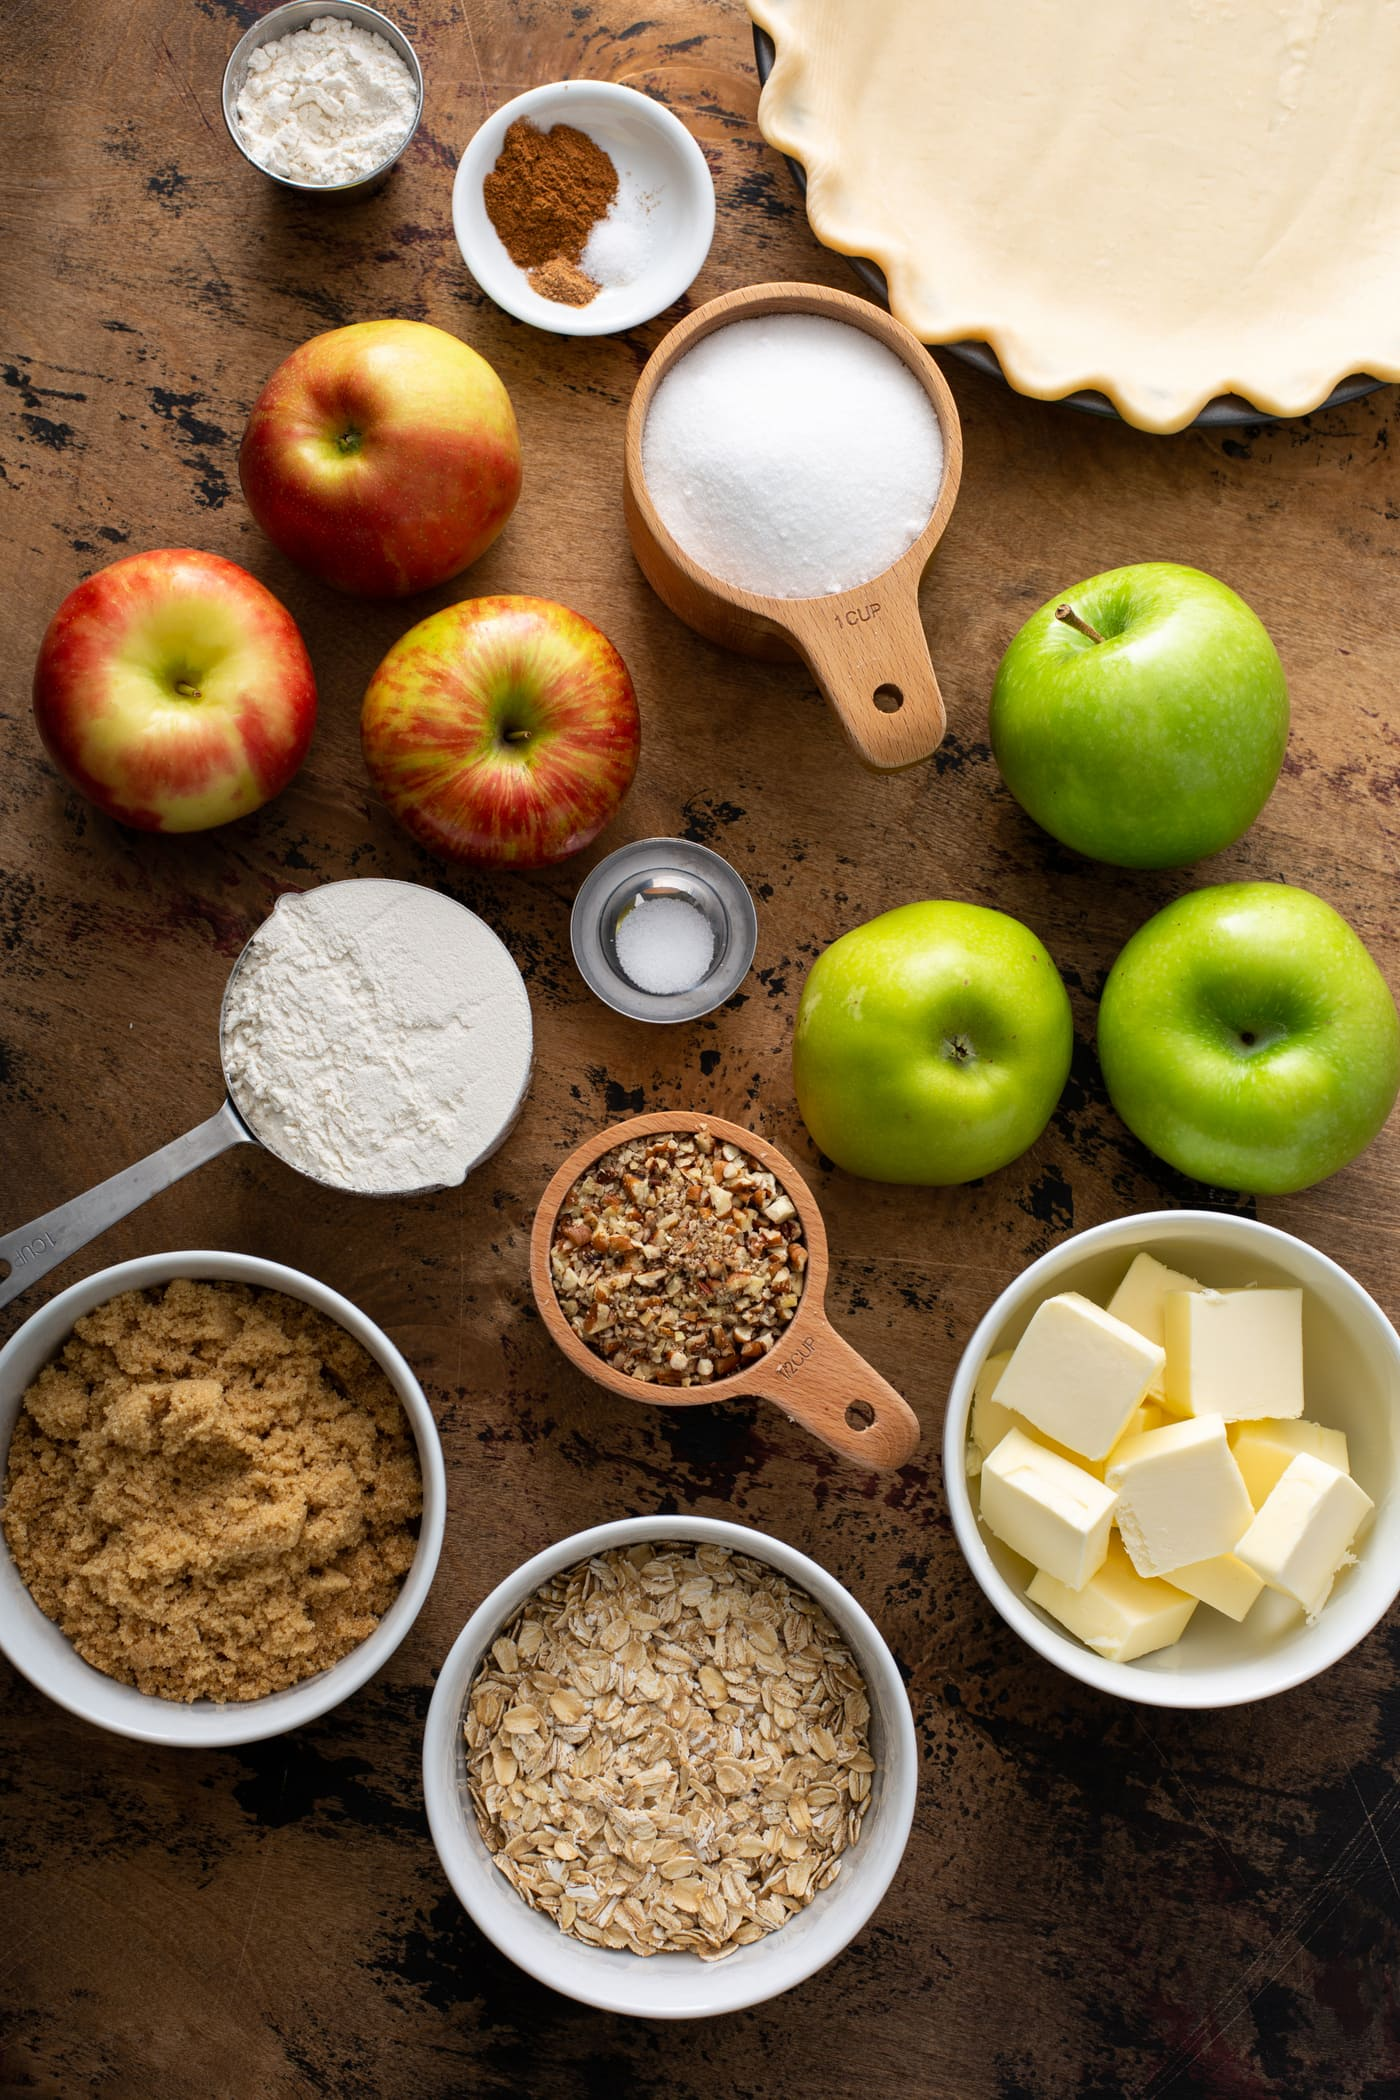 a picture of ingredients for Dutch Apple Pie. there are green apples, red apples, oatmeal, butter, sugar, brown sugar, and spices.